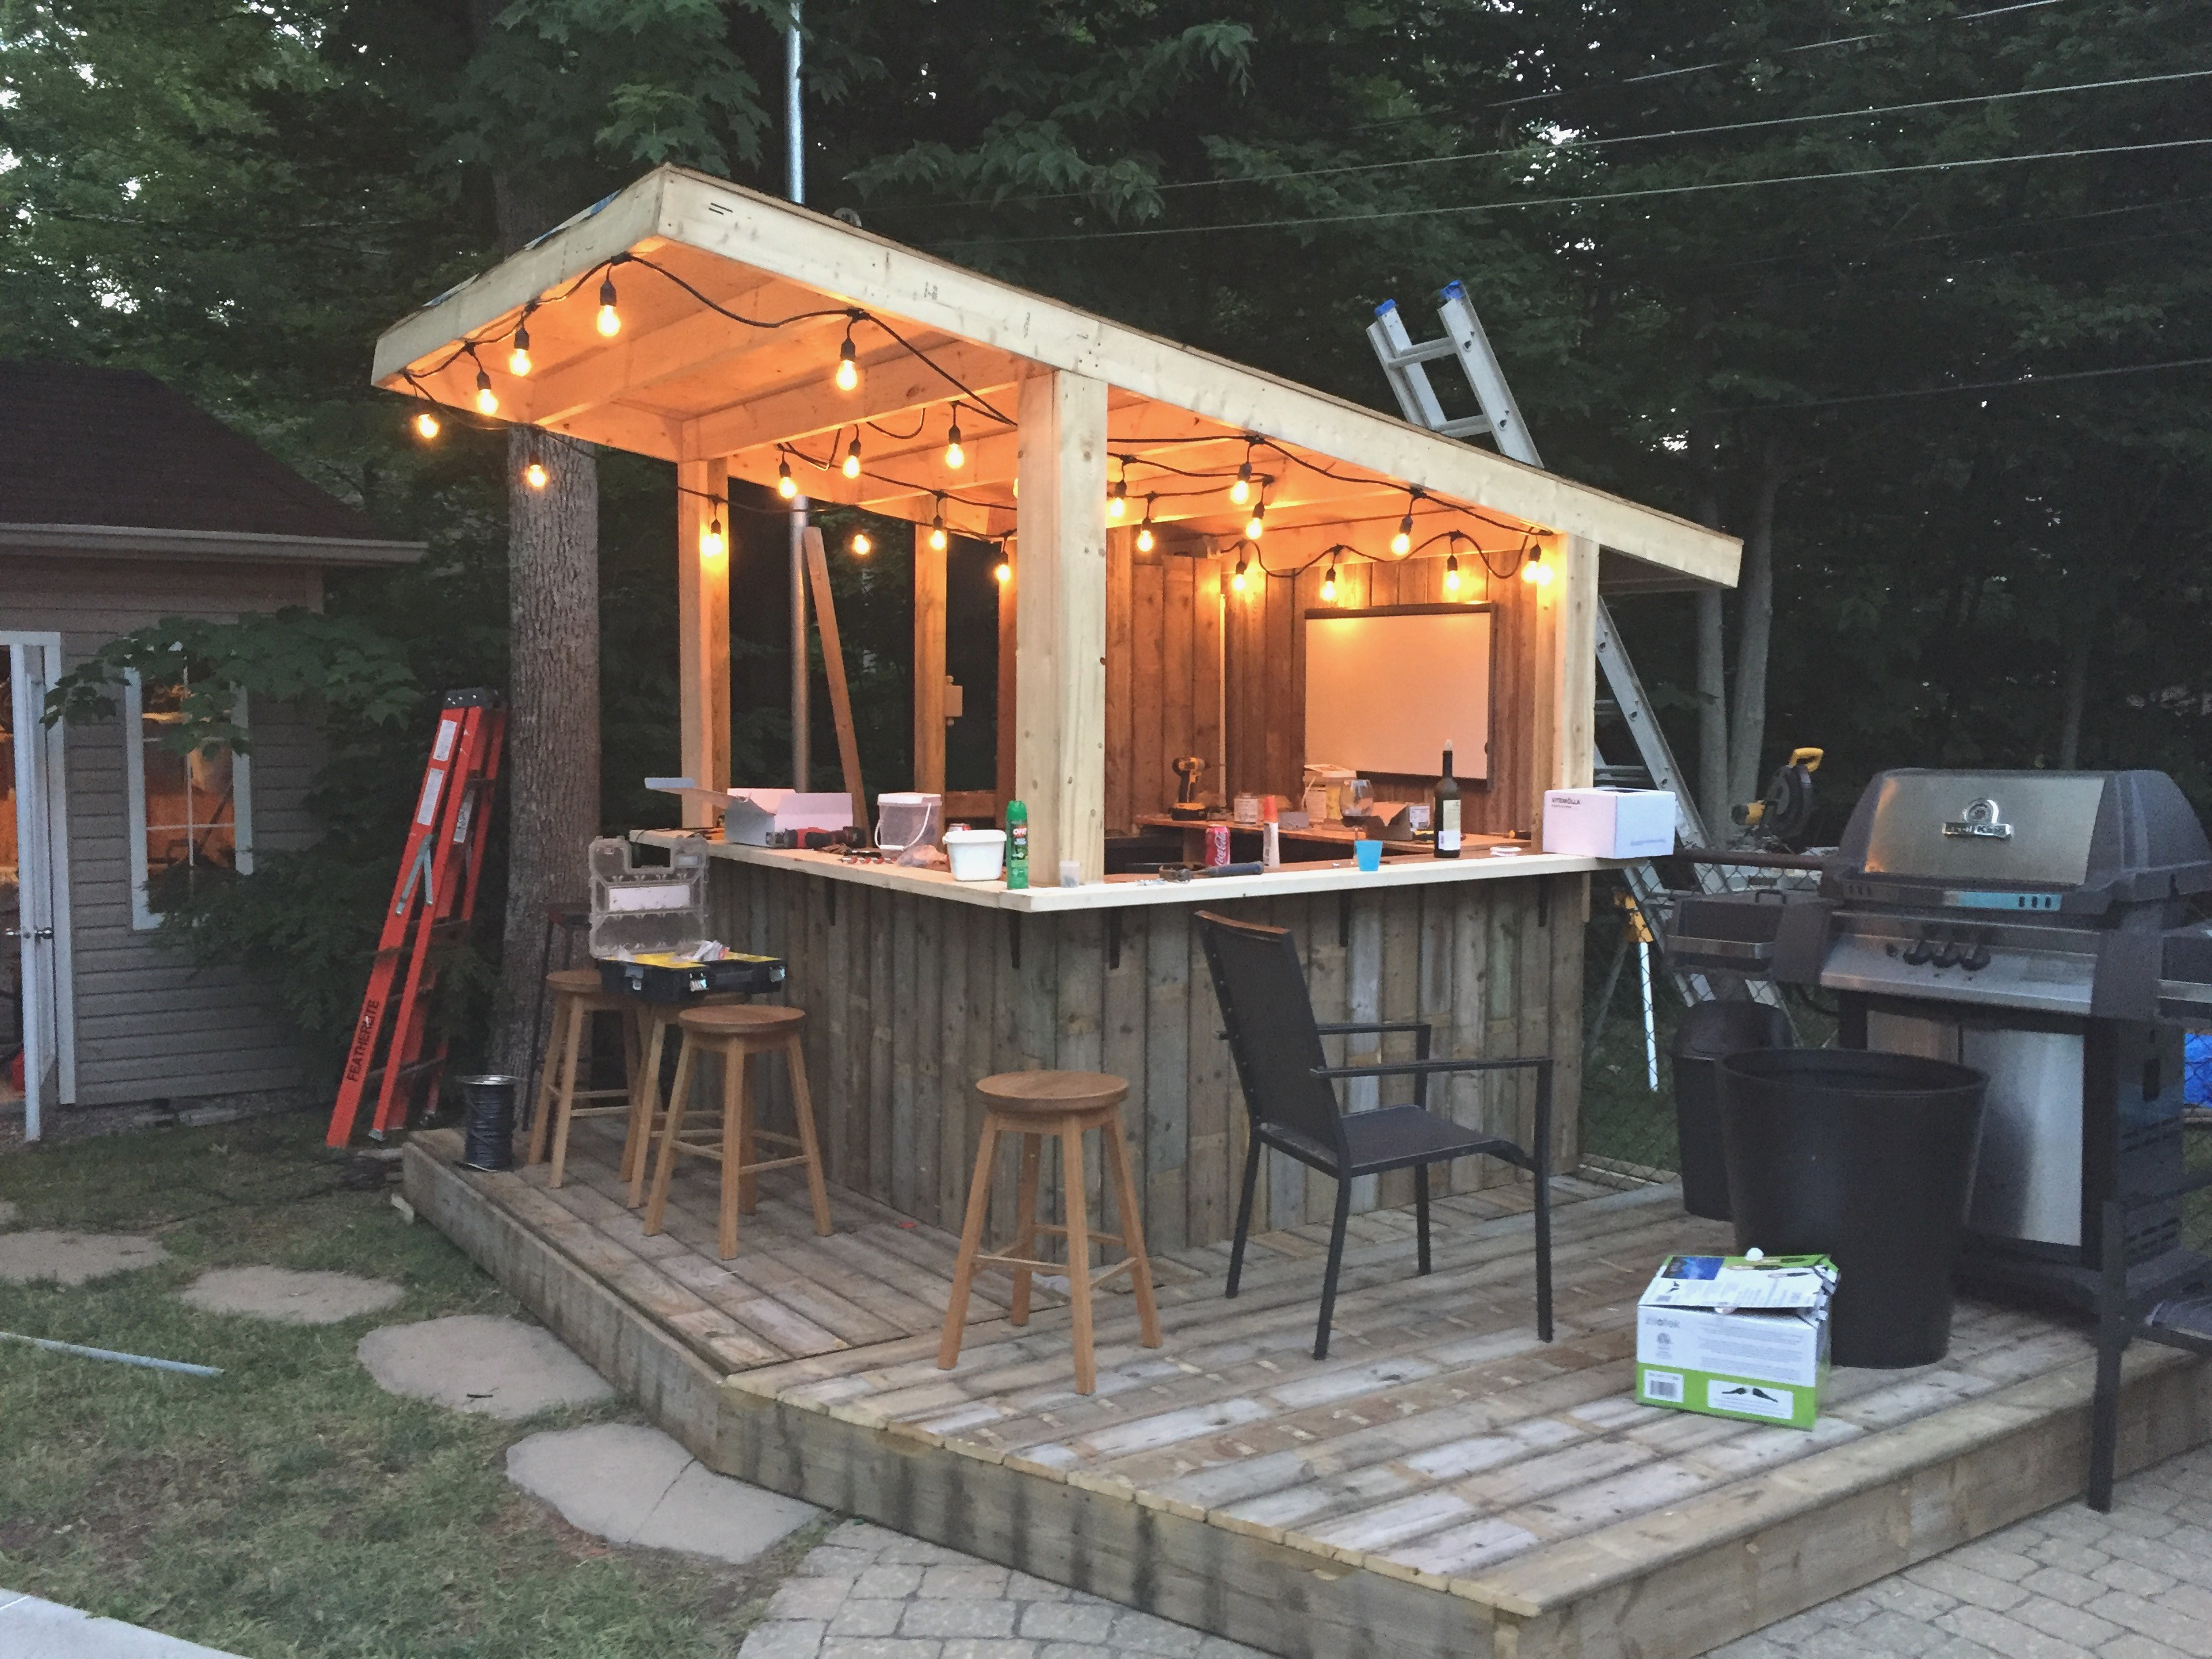 Garden bar outside patio bars near me the ultimate garden bar using pallets outside JRGOCFG